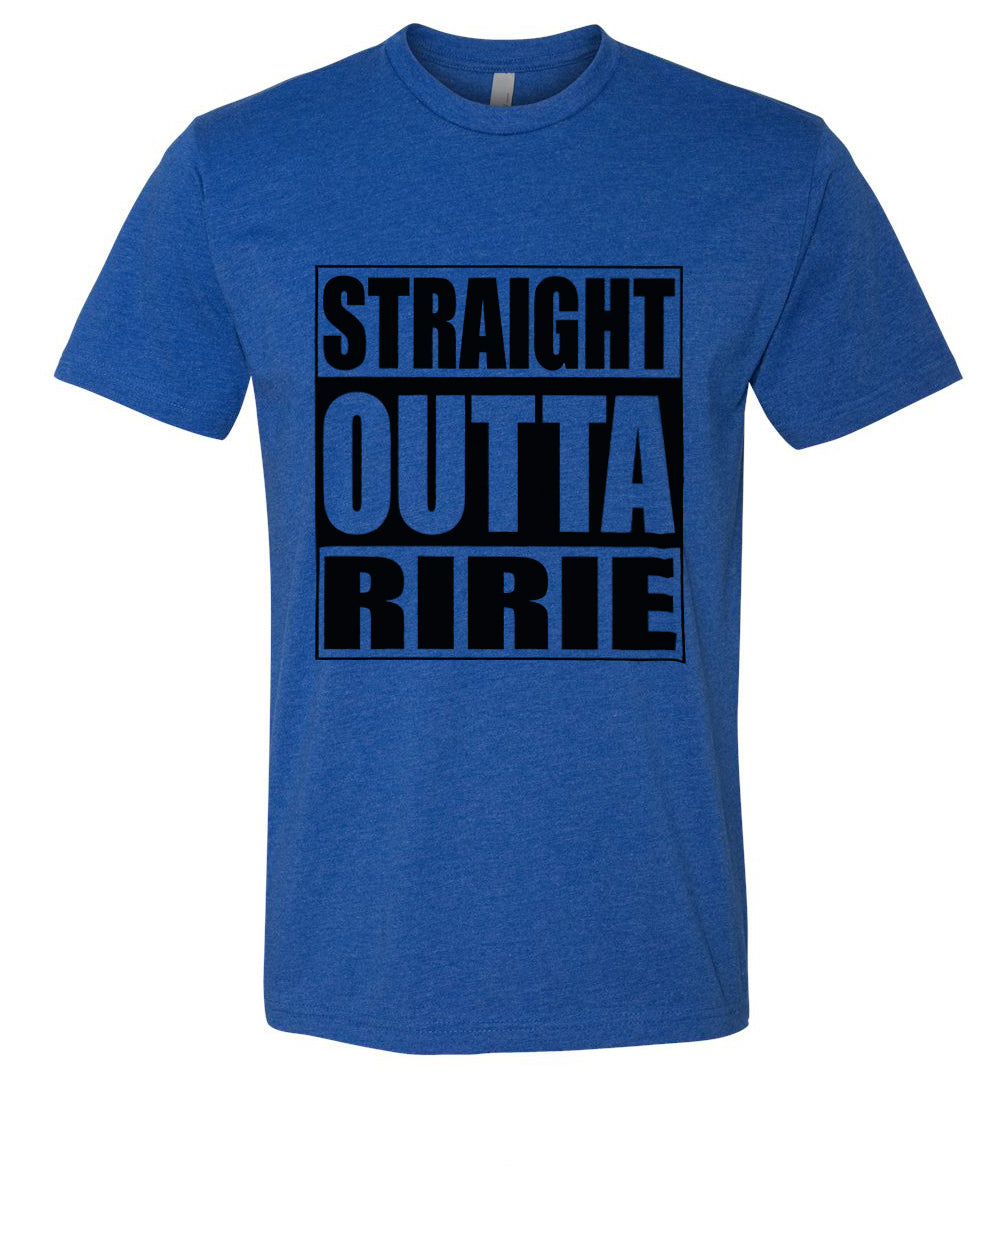 RIRIE HS – Next Level Fitted Crew Tee – Straight Outta Ririe (Black/Royal)